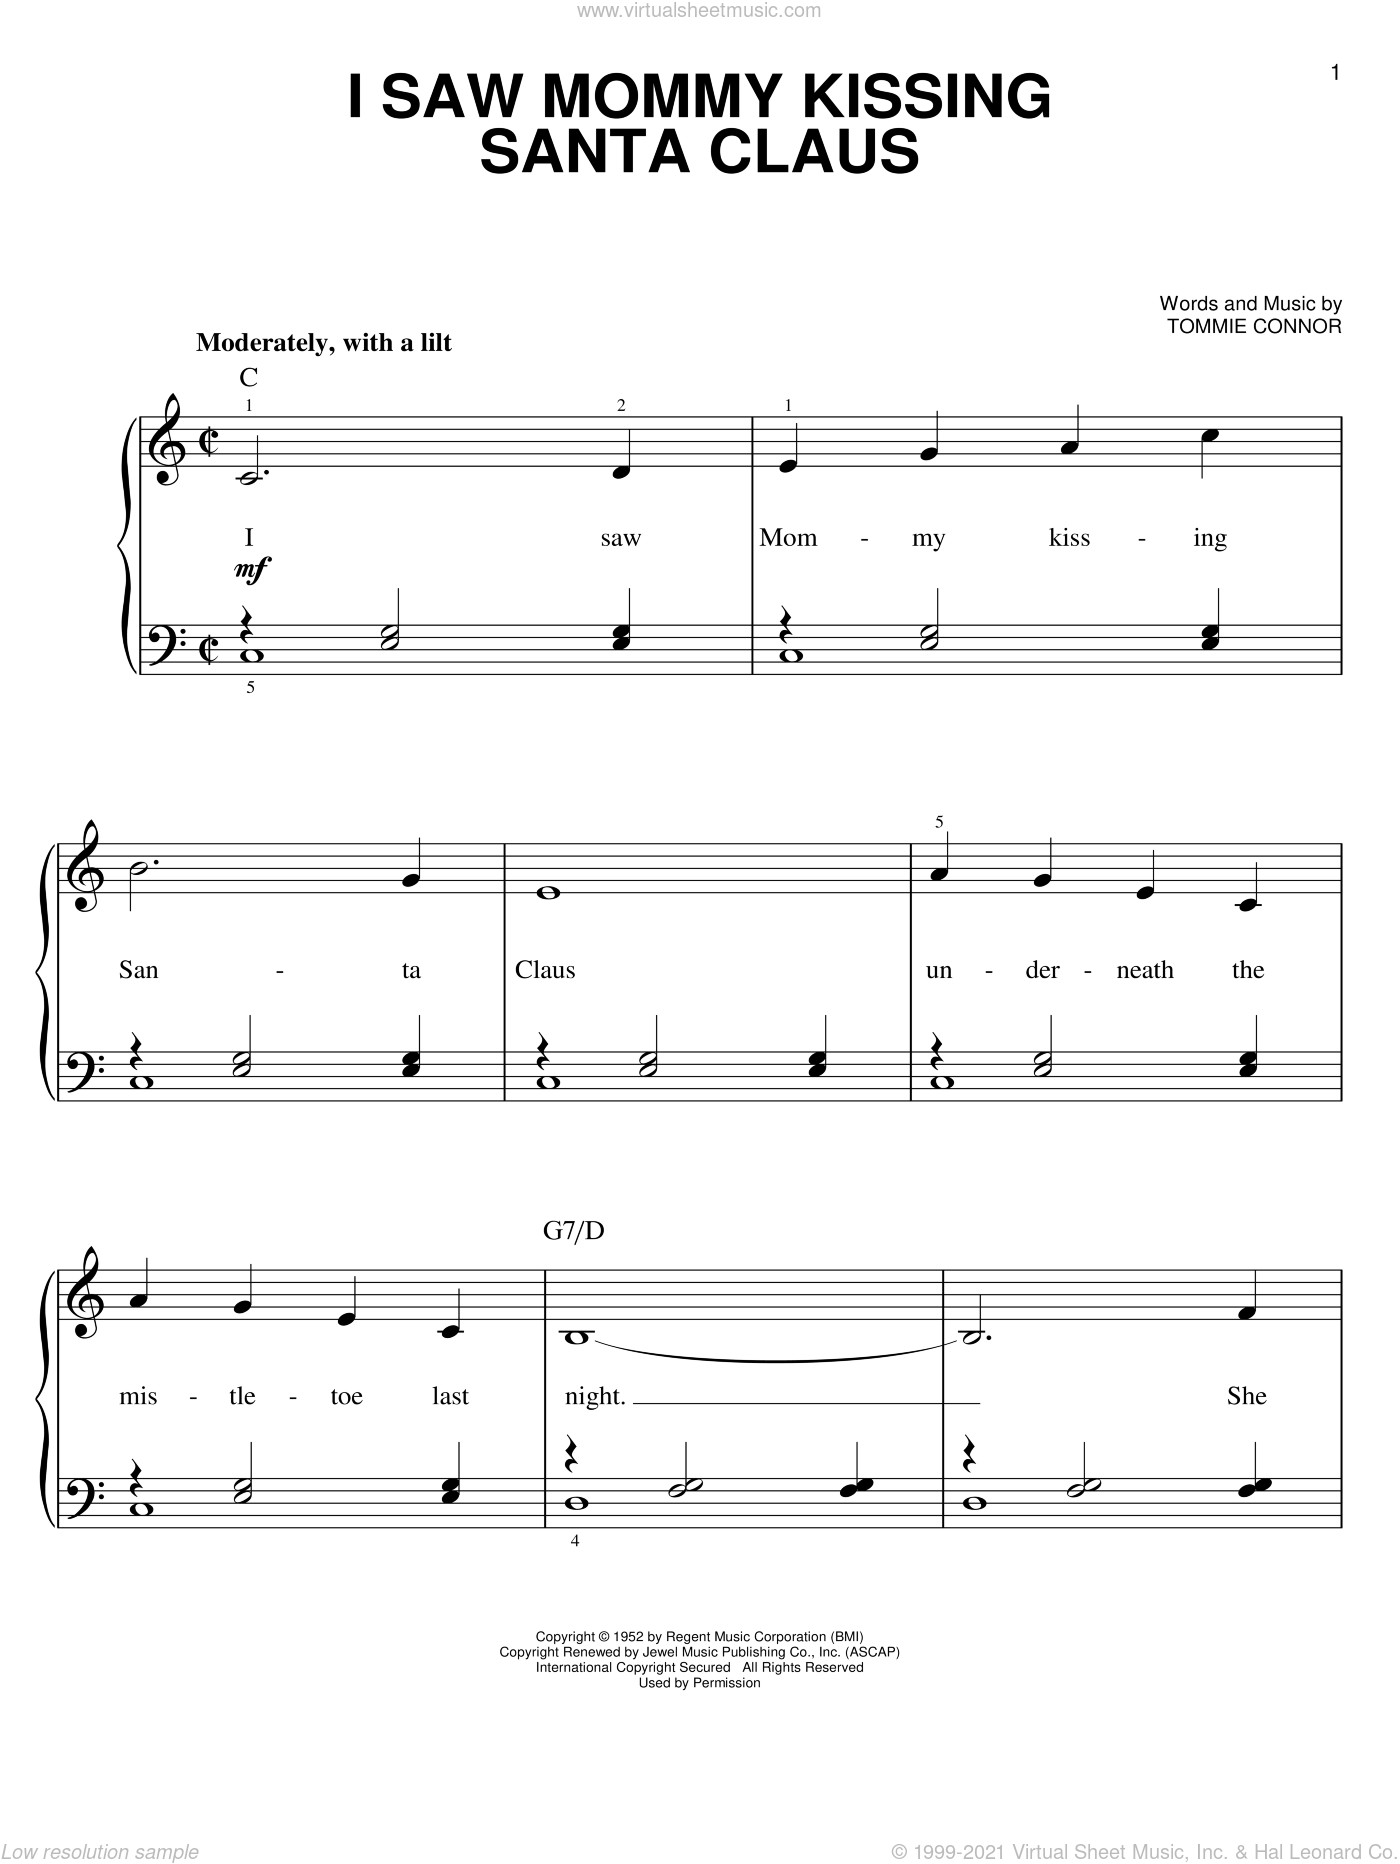 I Saw Mommy Kissing Santa Claus, (easy) sheet music for piano solo by Tommie Connor, easy skill level